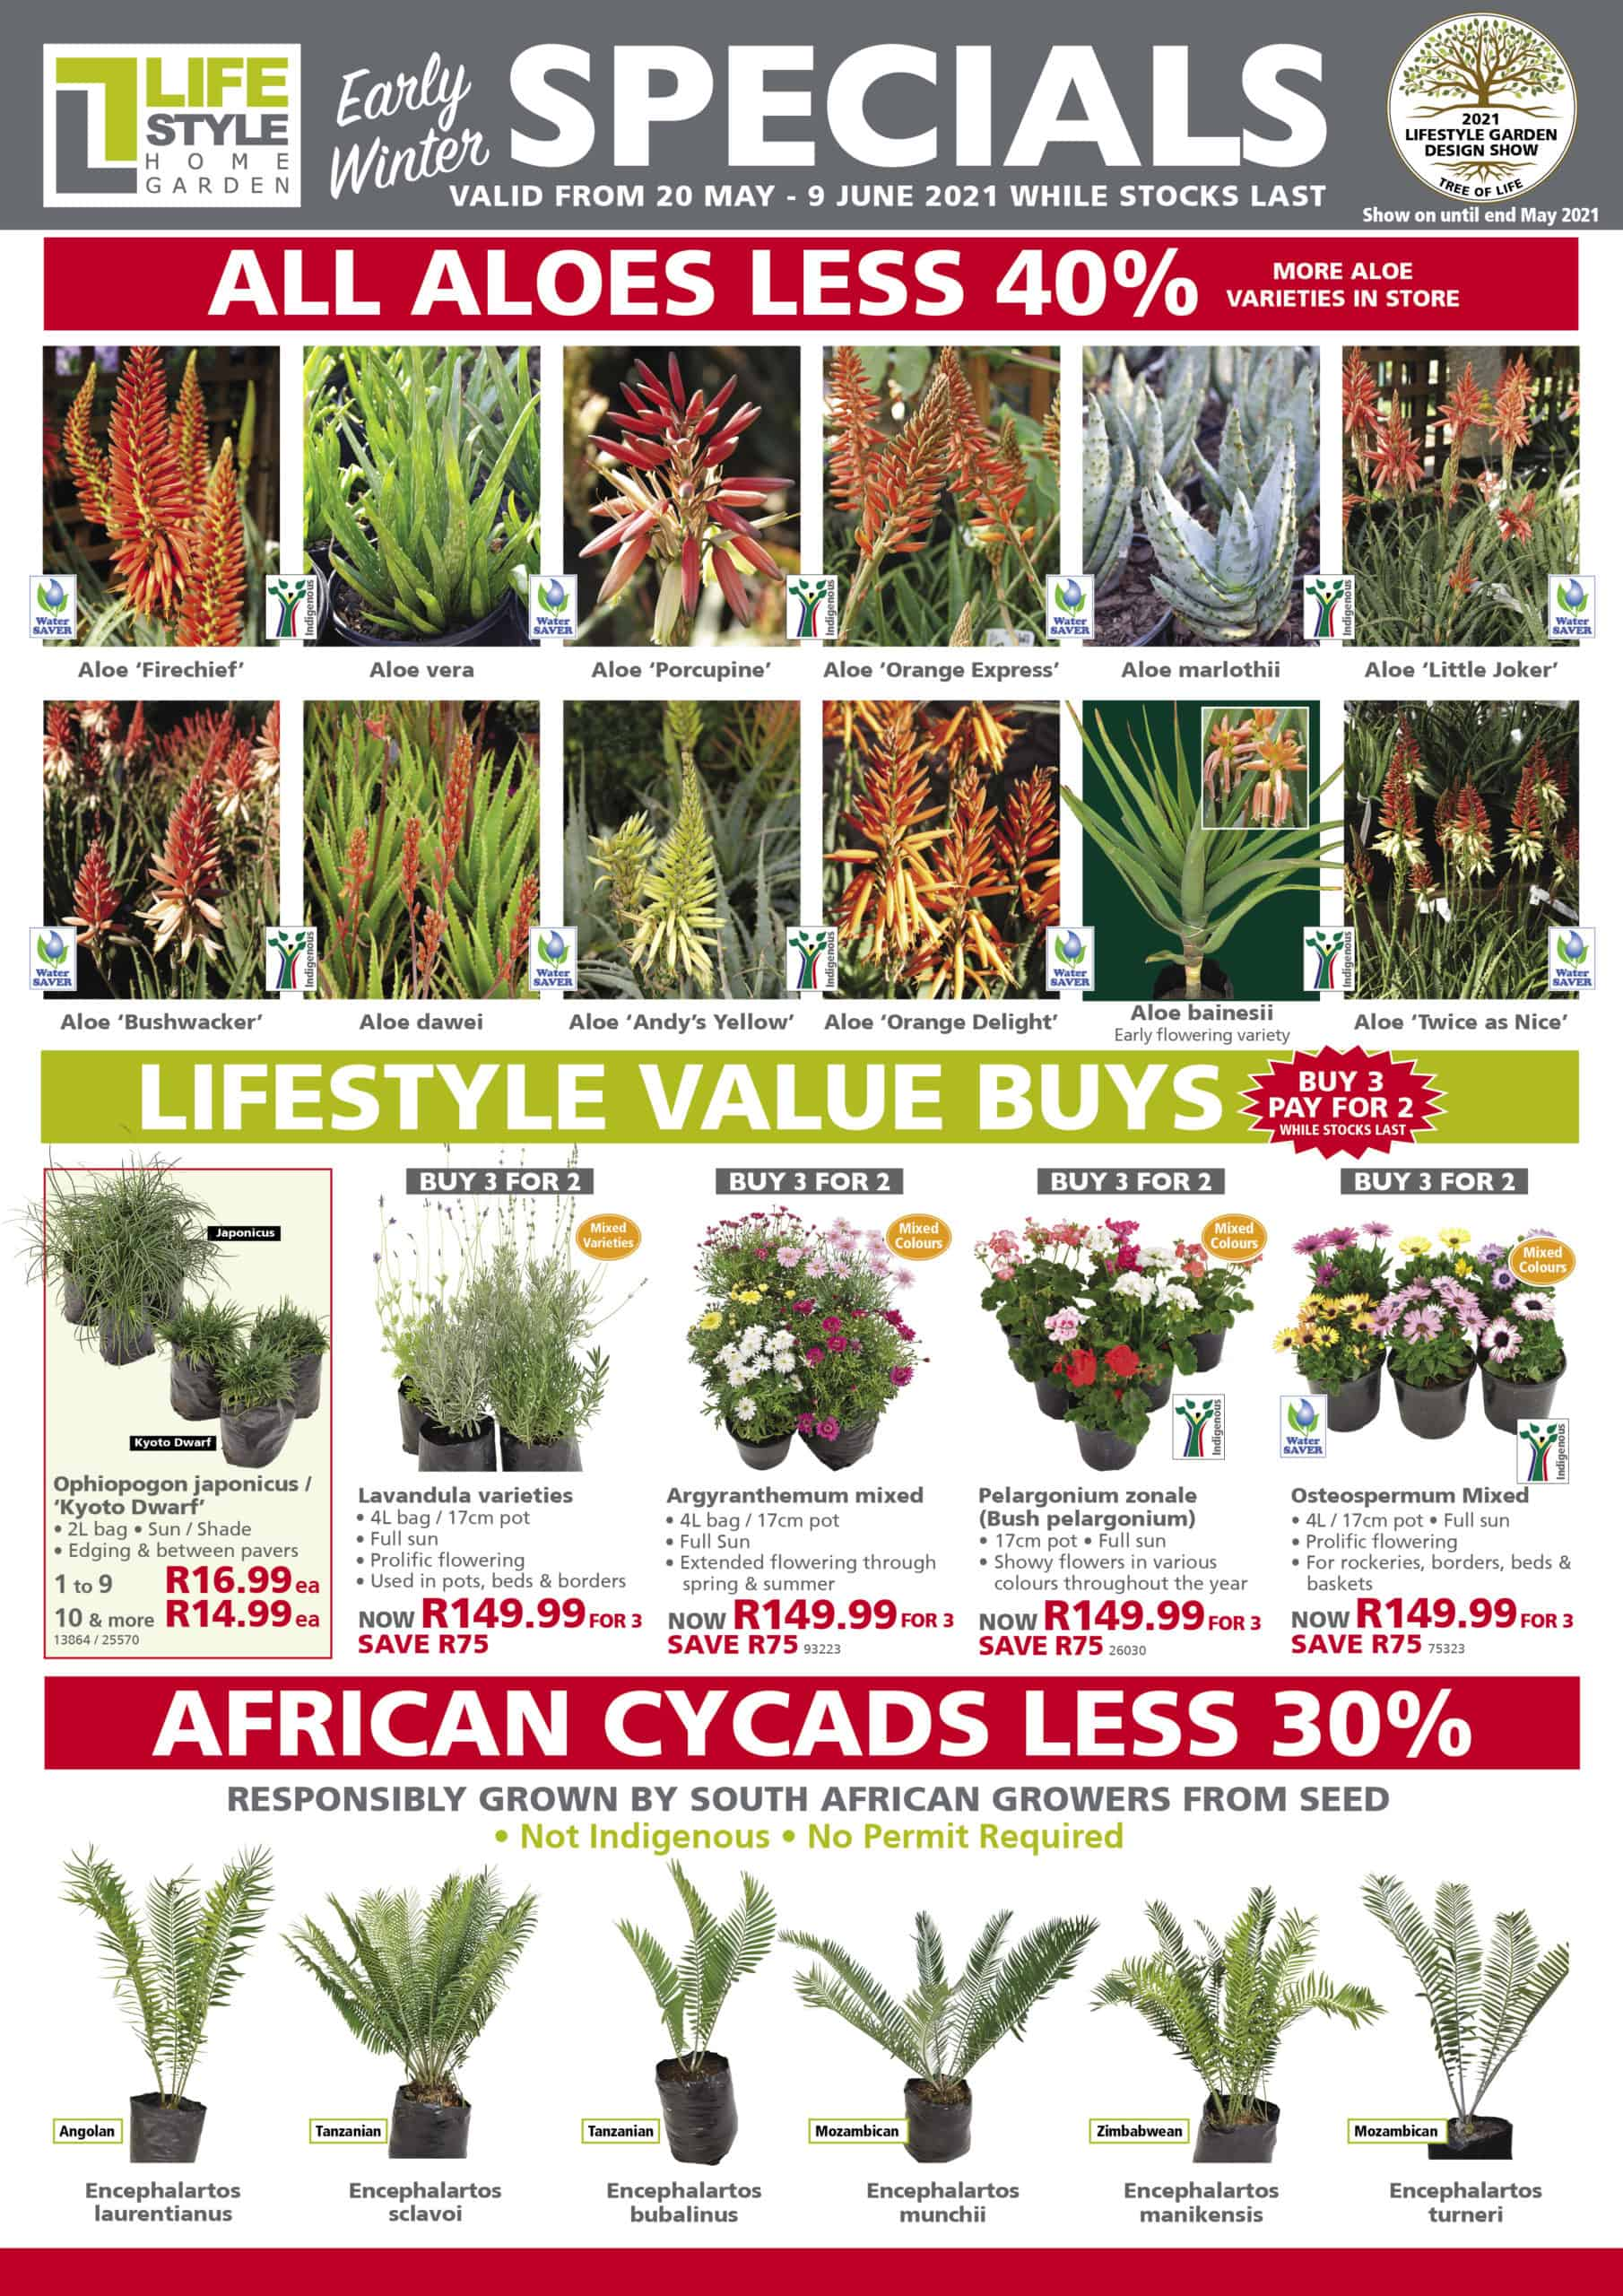 lifestyle home garden indoor plants grow your own winter specials landscaping grasses outdoorscaping mica ferns plant pots indigenous waterwise south africa johannesburg